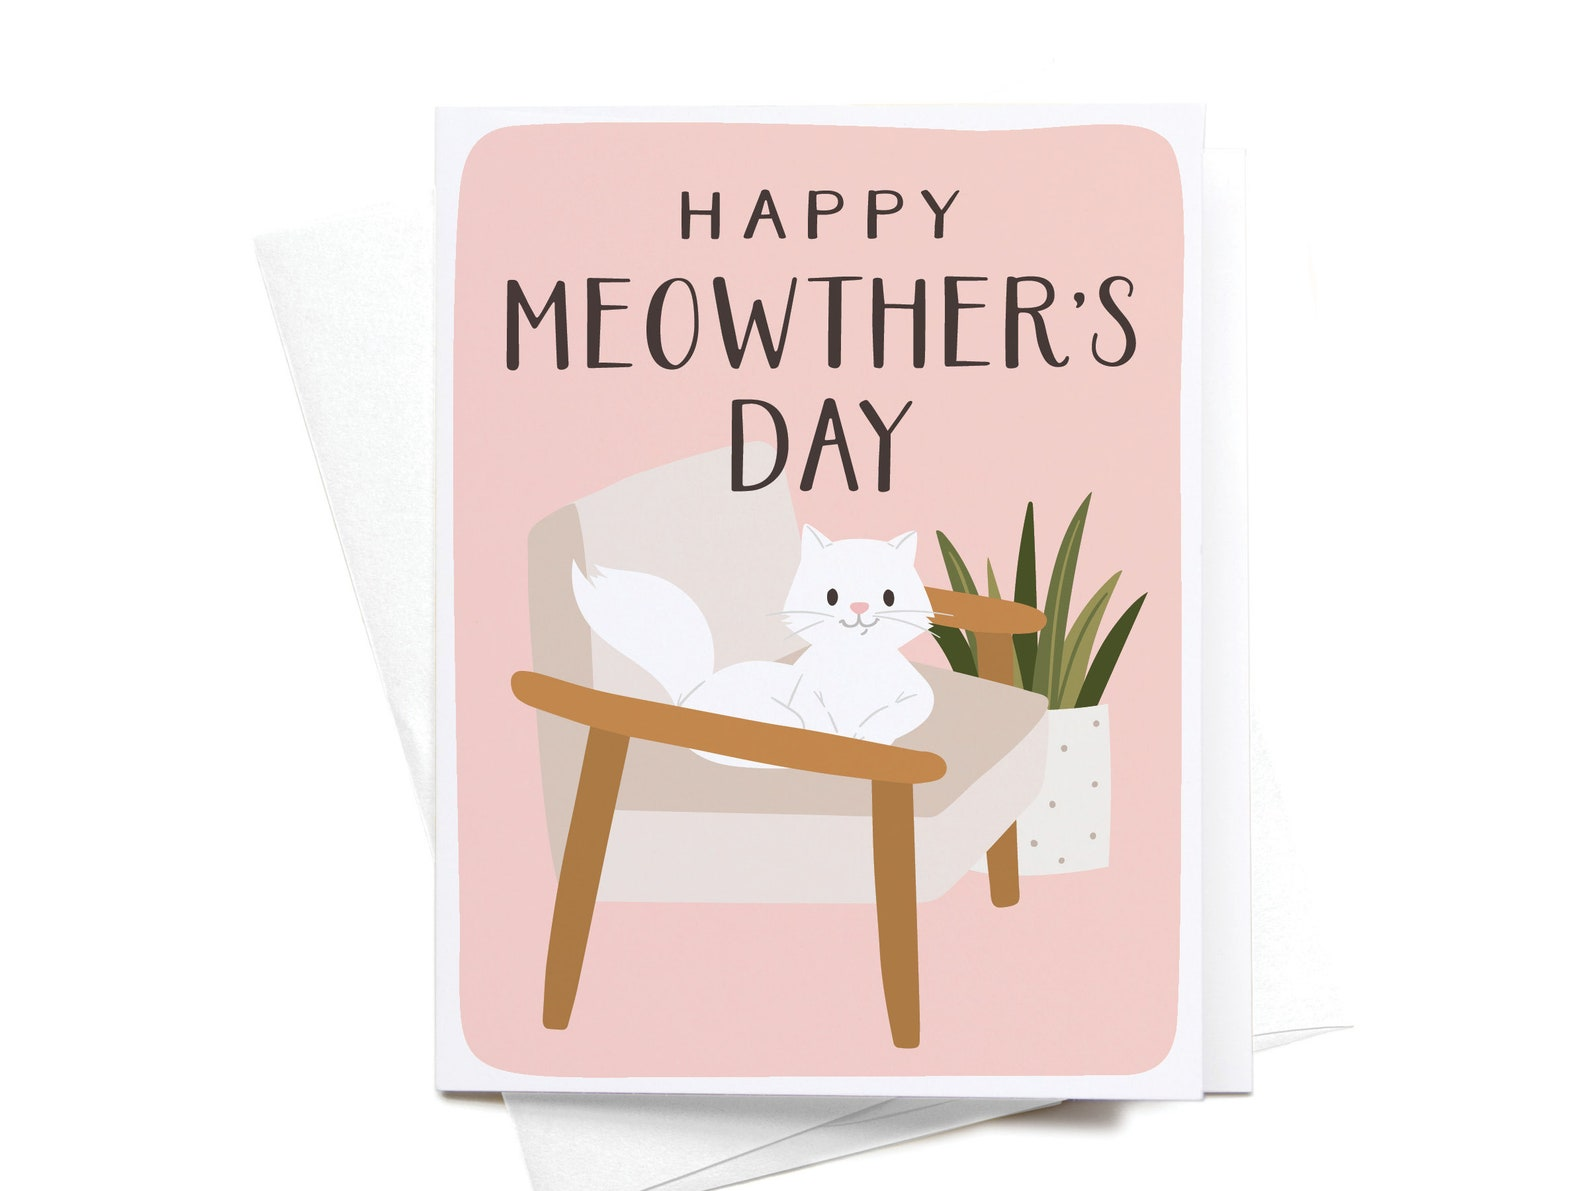 Happy Meowther's Day Greeting Card